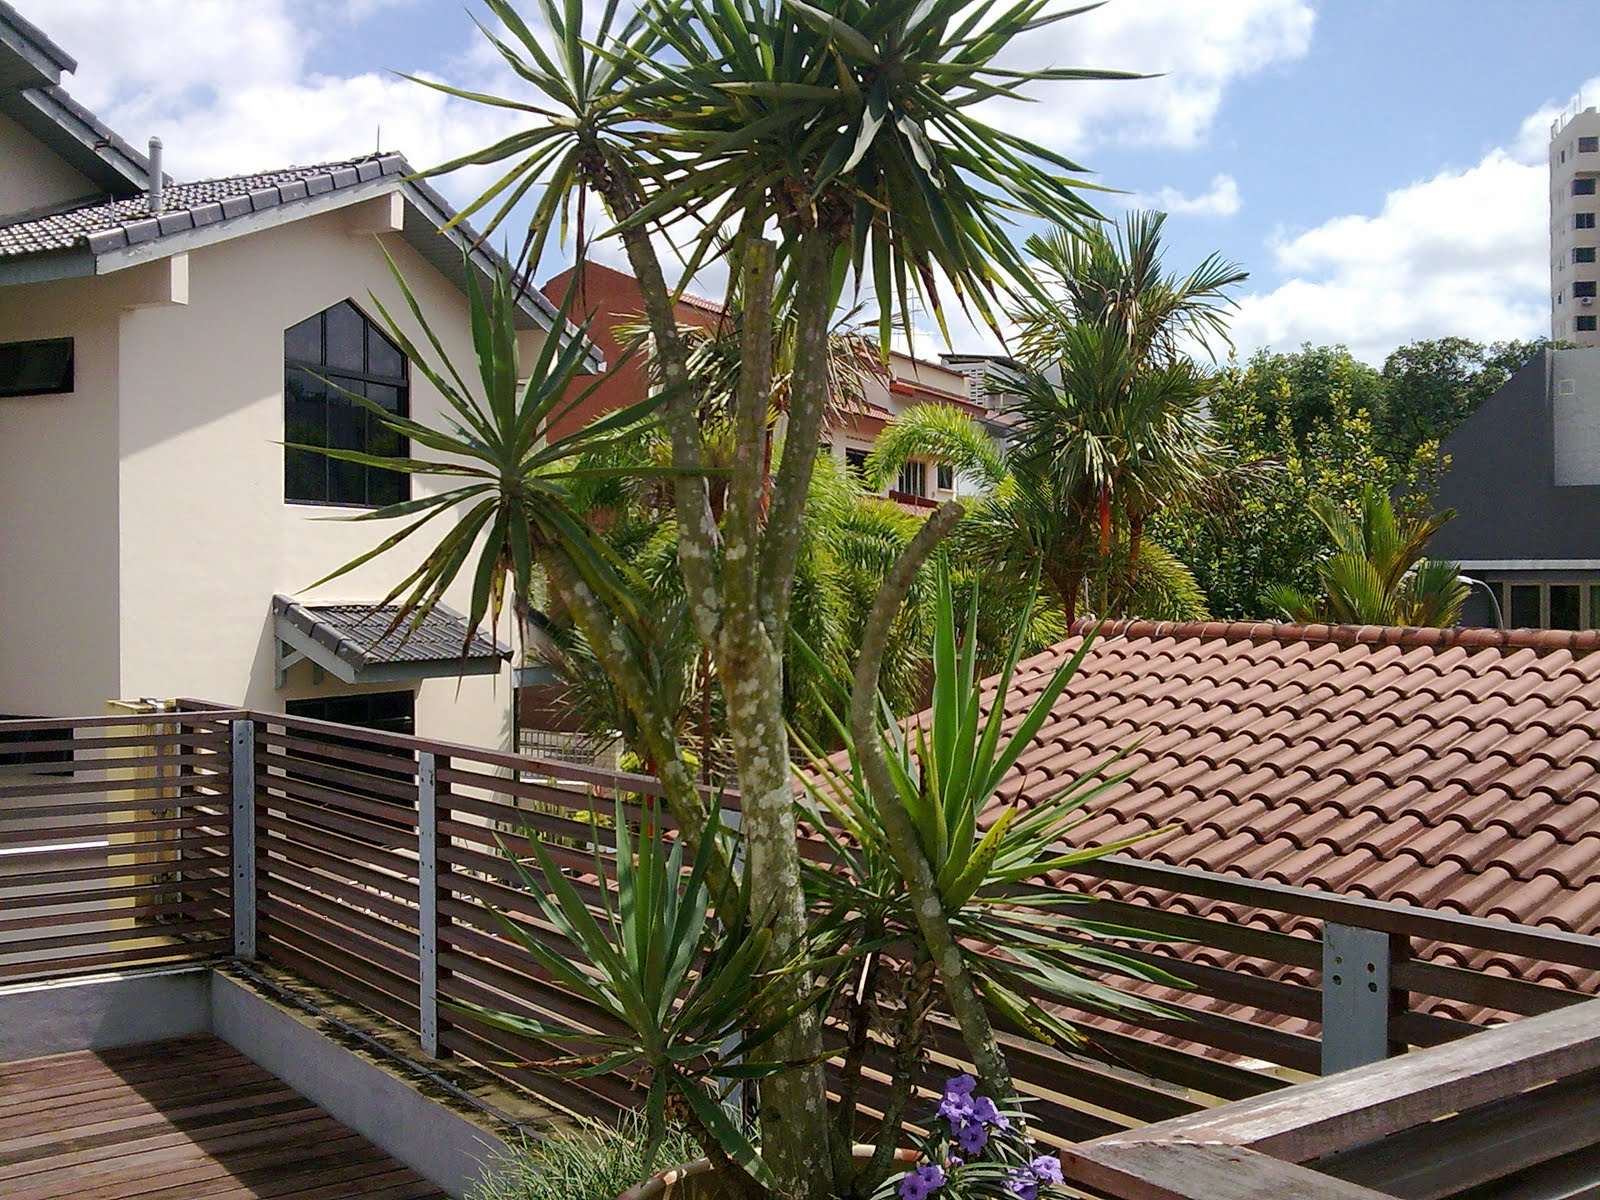 SEIZE THE DAY : The Beautiful Japanese Palm in my Rooftop Garden